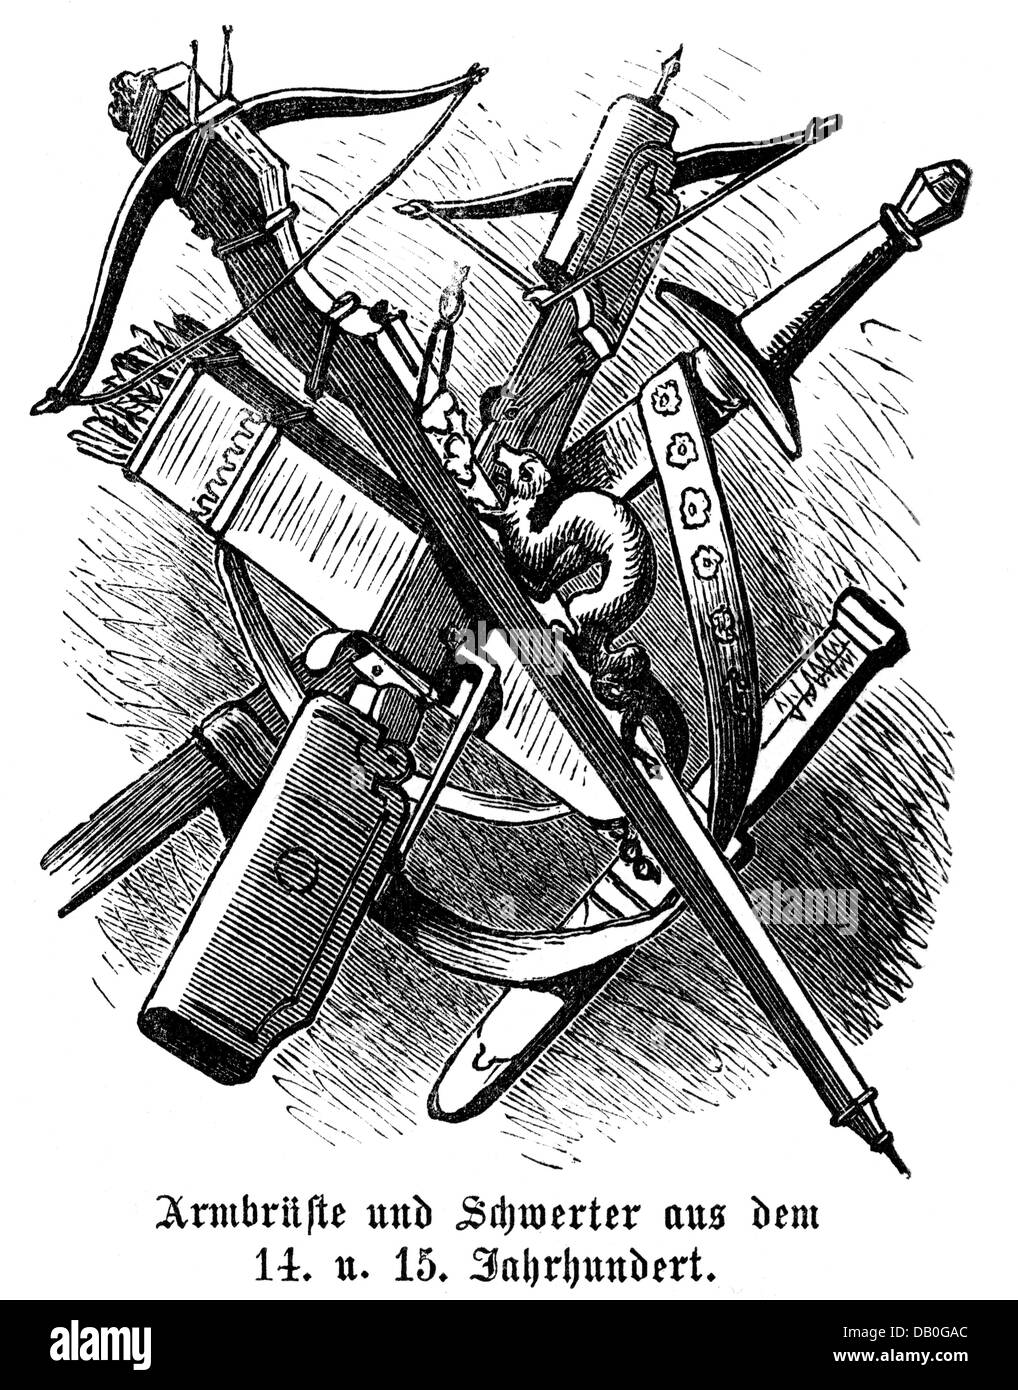 weapons, Middle Ages, crossbows and swords from the 14th and 15th century, wood engraving, 1872, crossbow, sword, - Stock Image